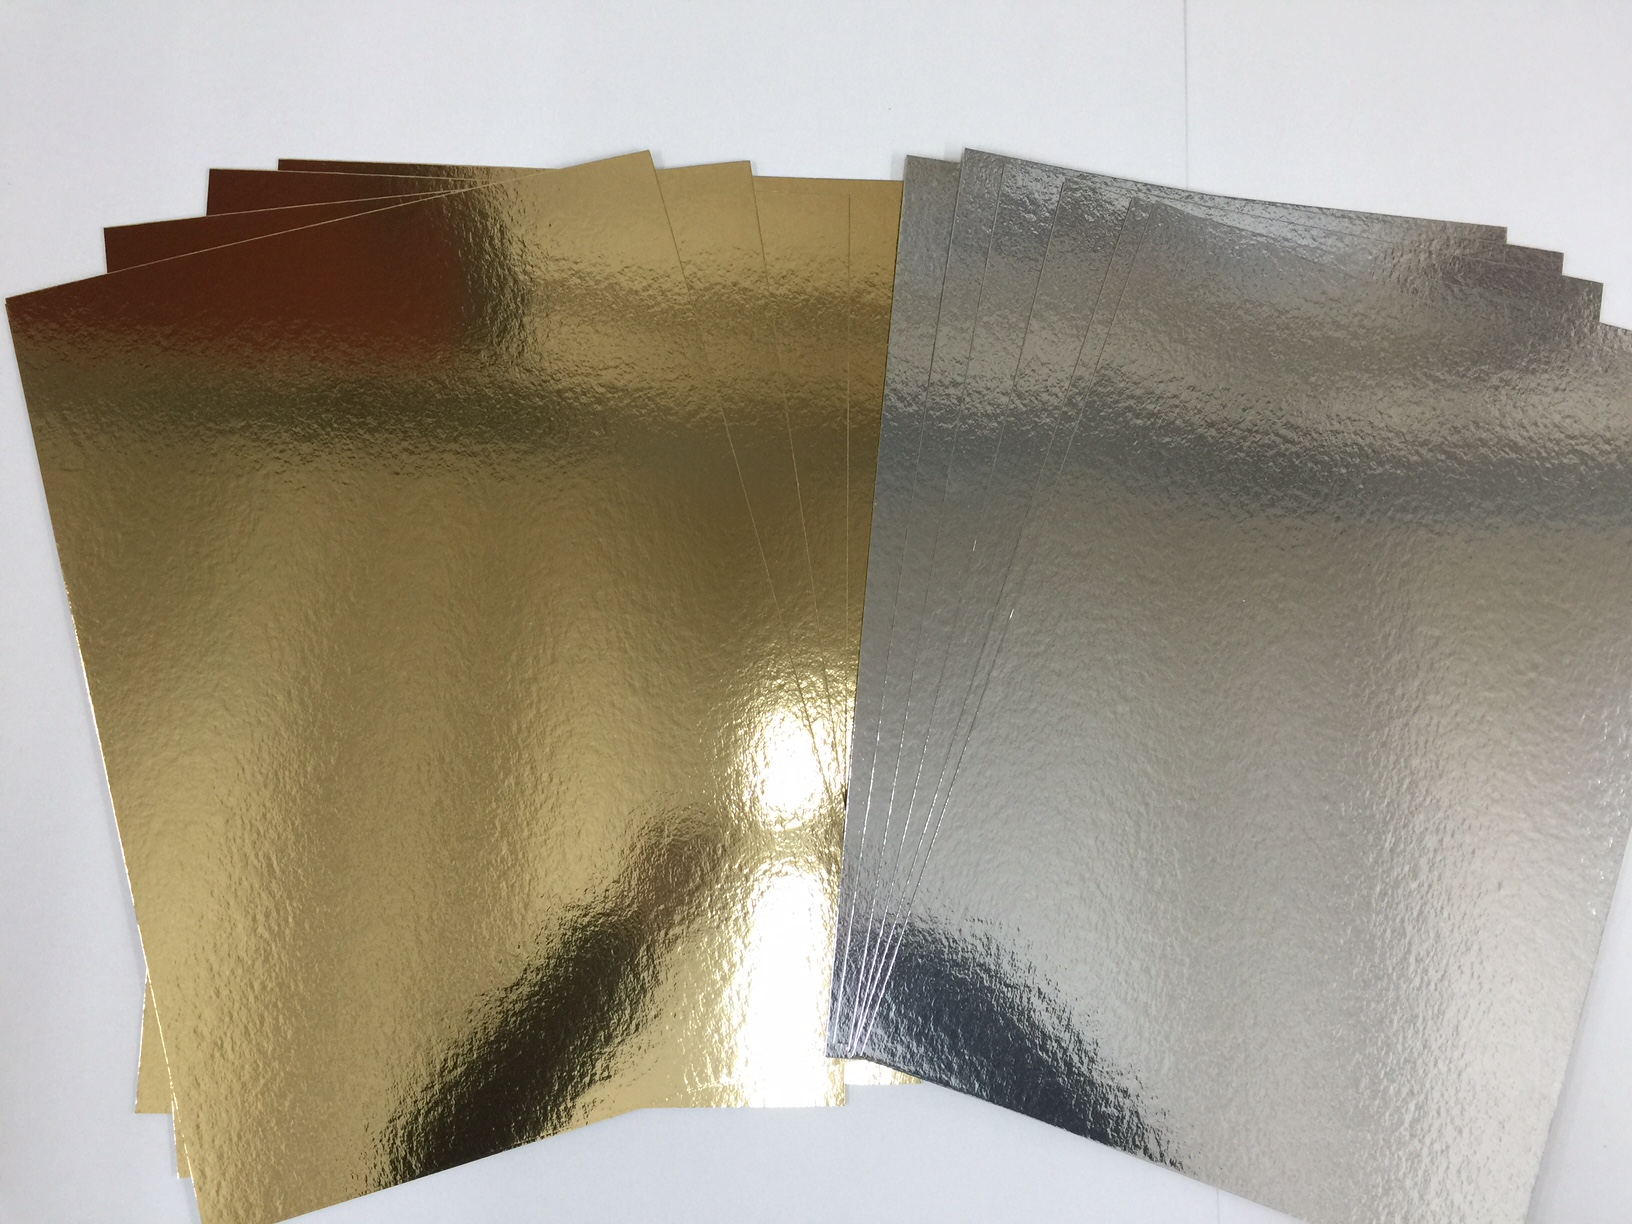 10 in a pack A1 + Gold & Silver Card Board Mirror - Xmas Metallic 1200micron 1.2mm-131